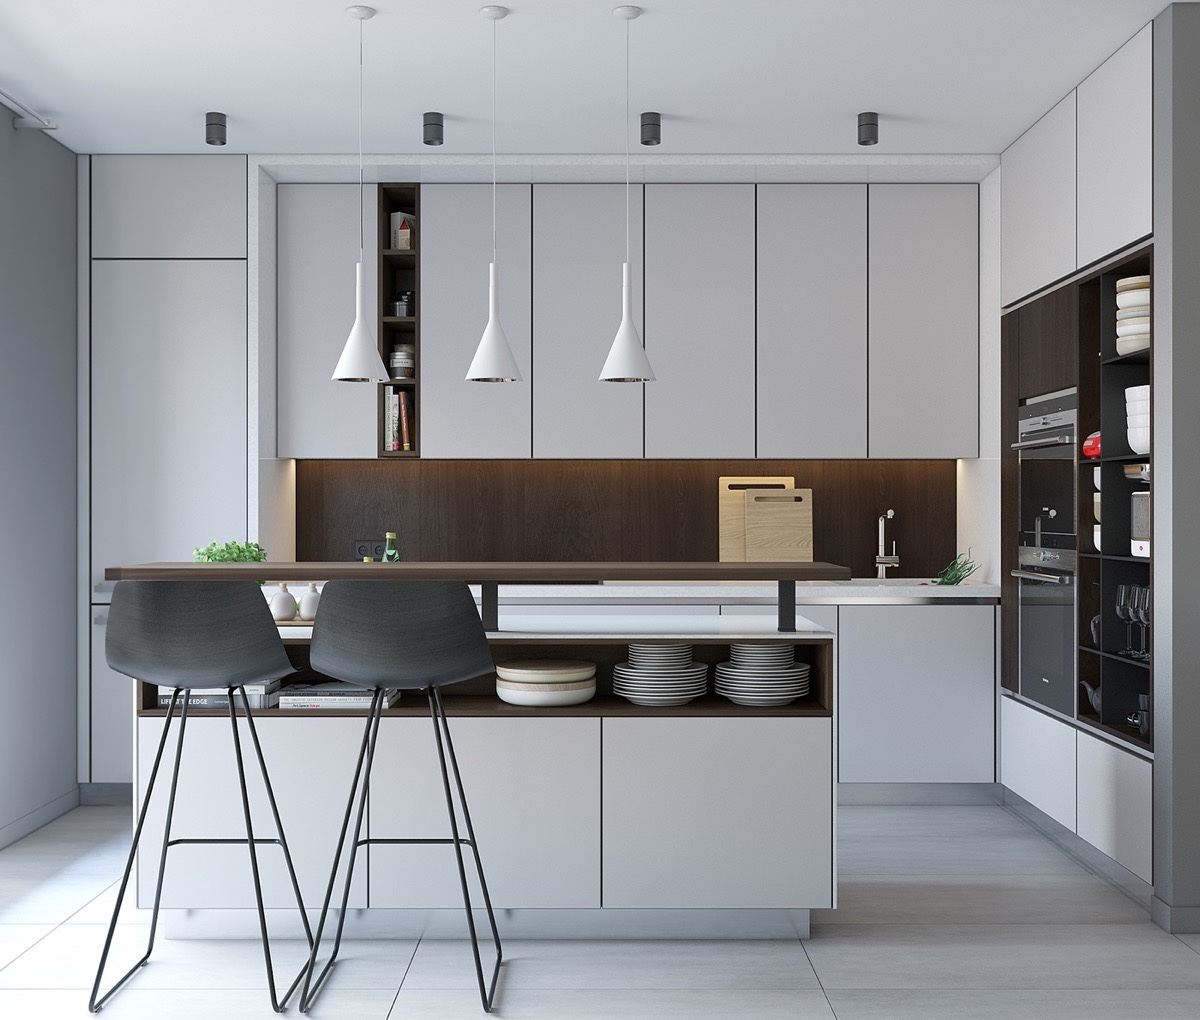 minimalist kitchen interior design.  40 Minimalist Kitchens to Get Super Sleek Inspiration